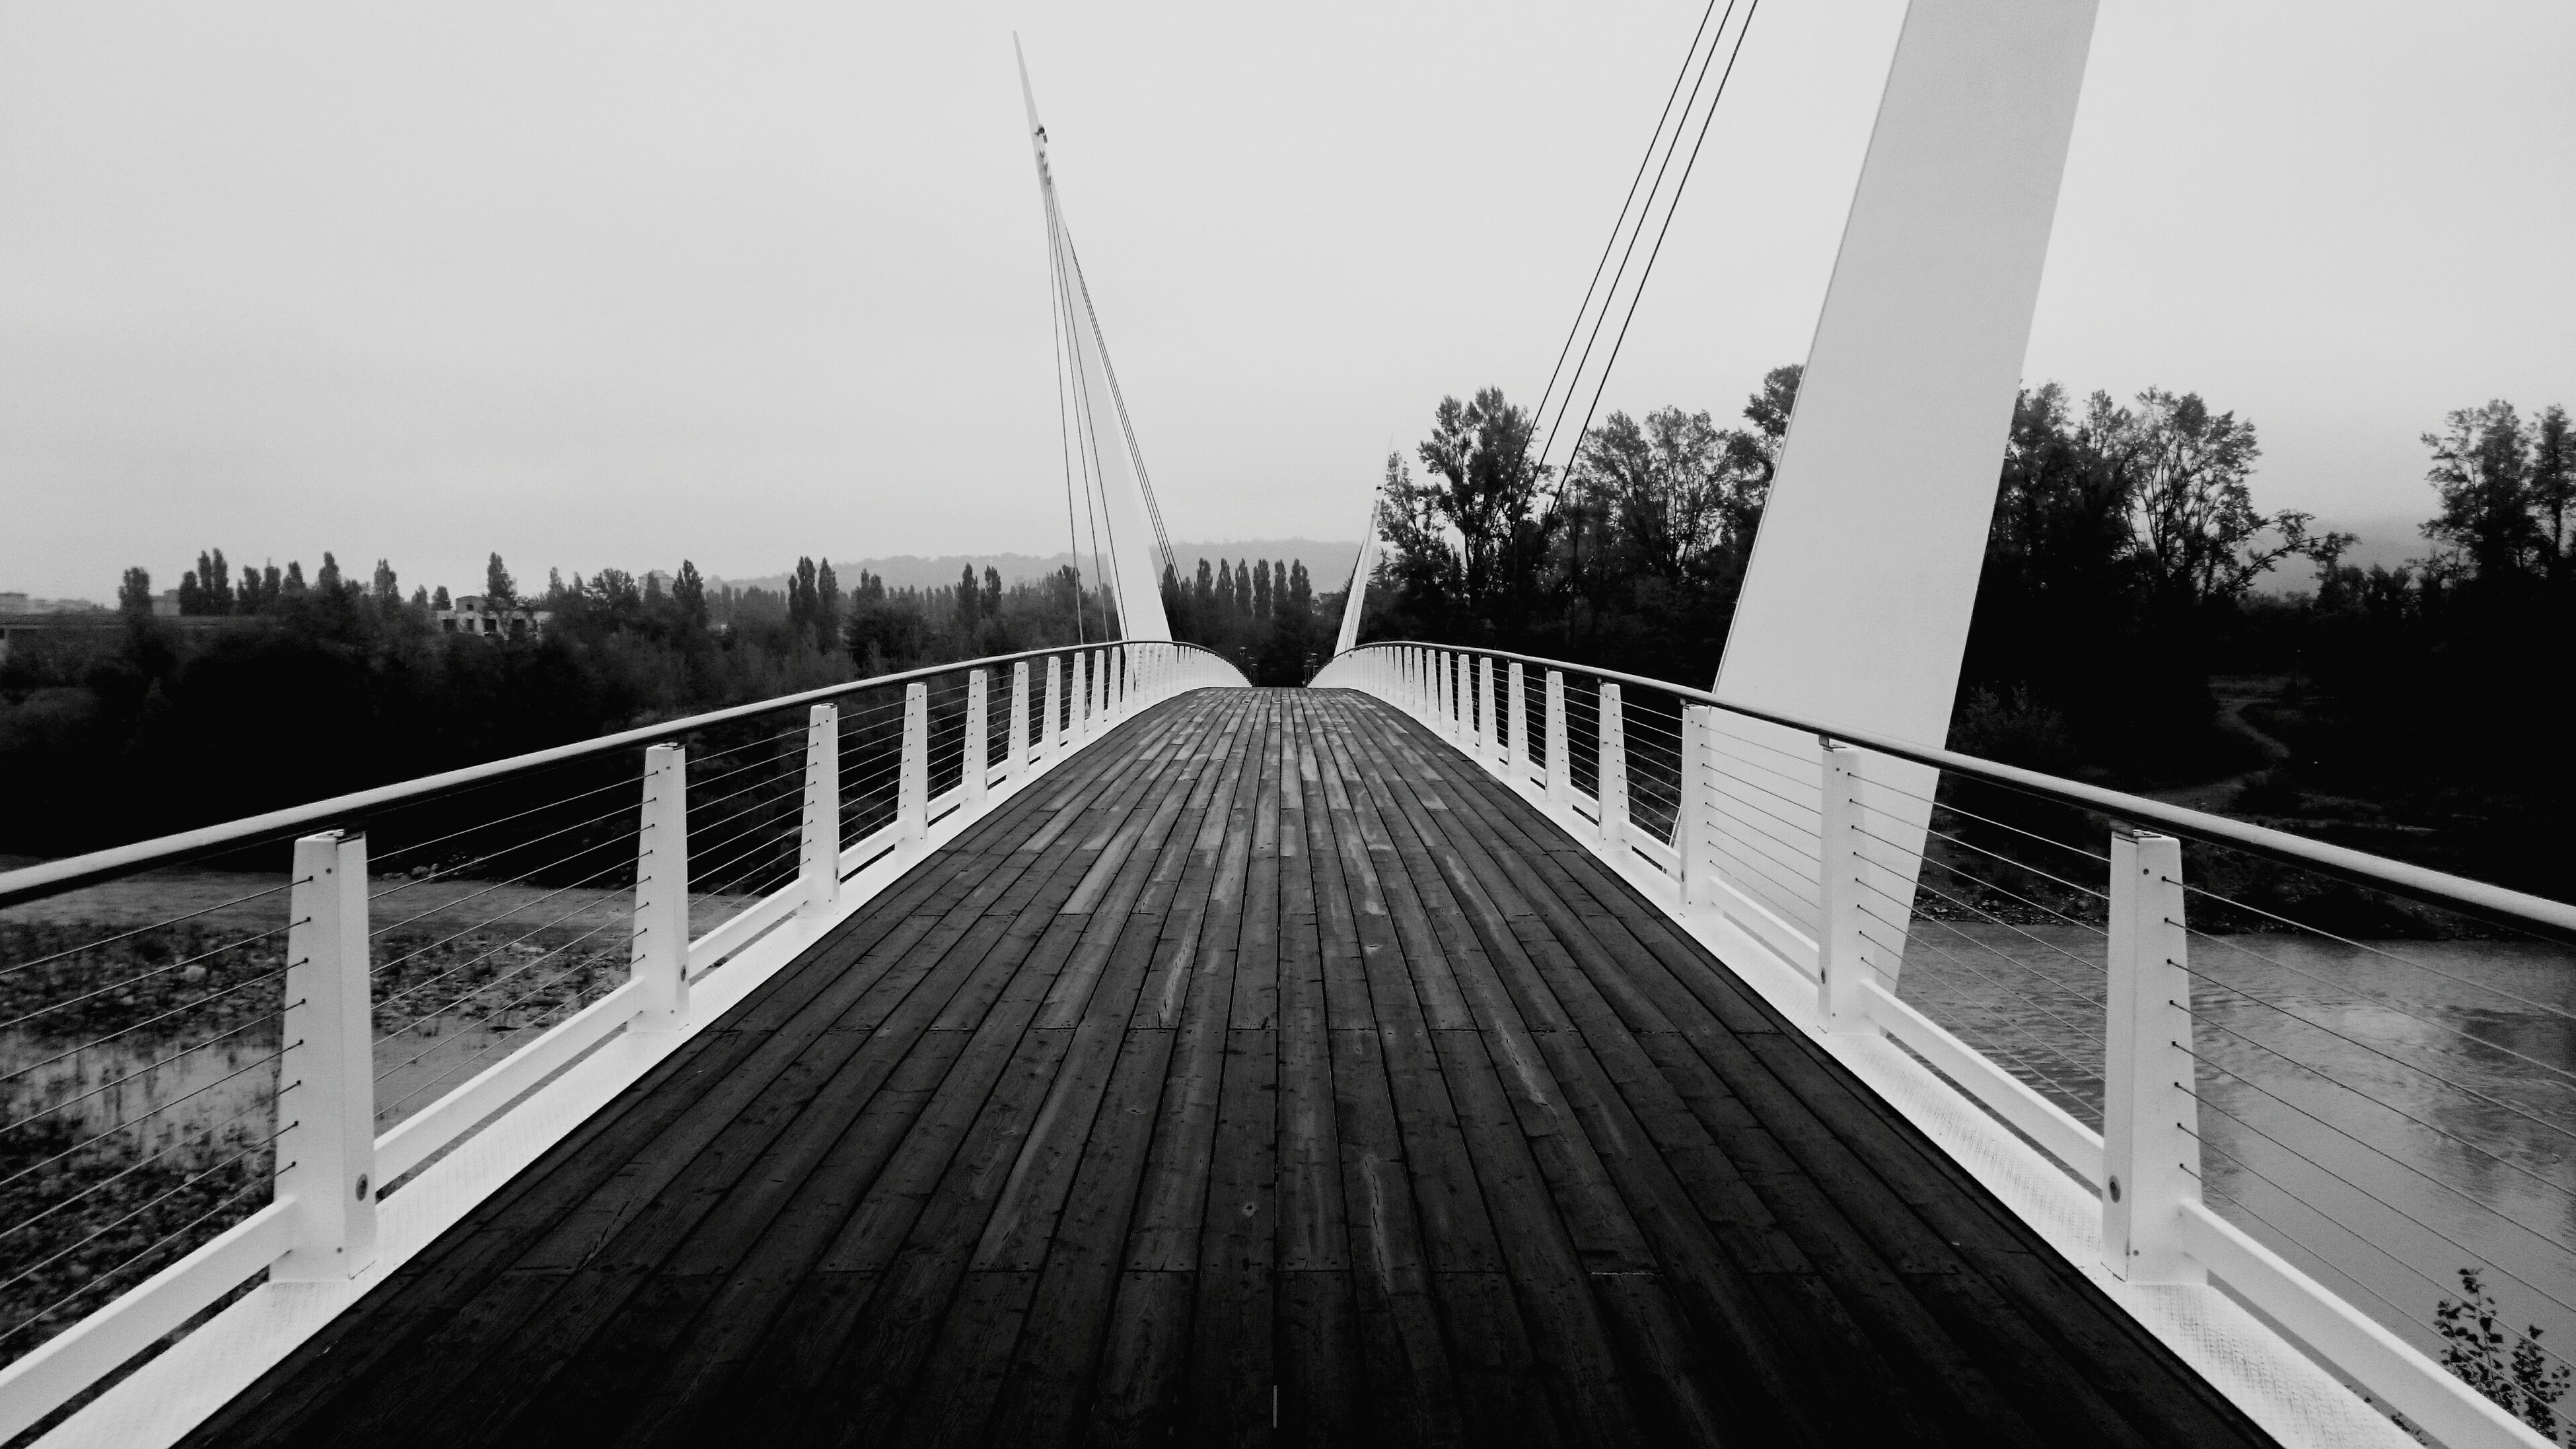 the way forward, diminishing perspective, vanishing point, connection, railing, long, tree, clear sky, footbridge, built structure, bridge - man made structure, sky, tranquility, architecture, nature, outdoors, no people, walkway, narrow, wood - material